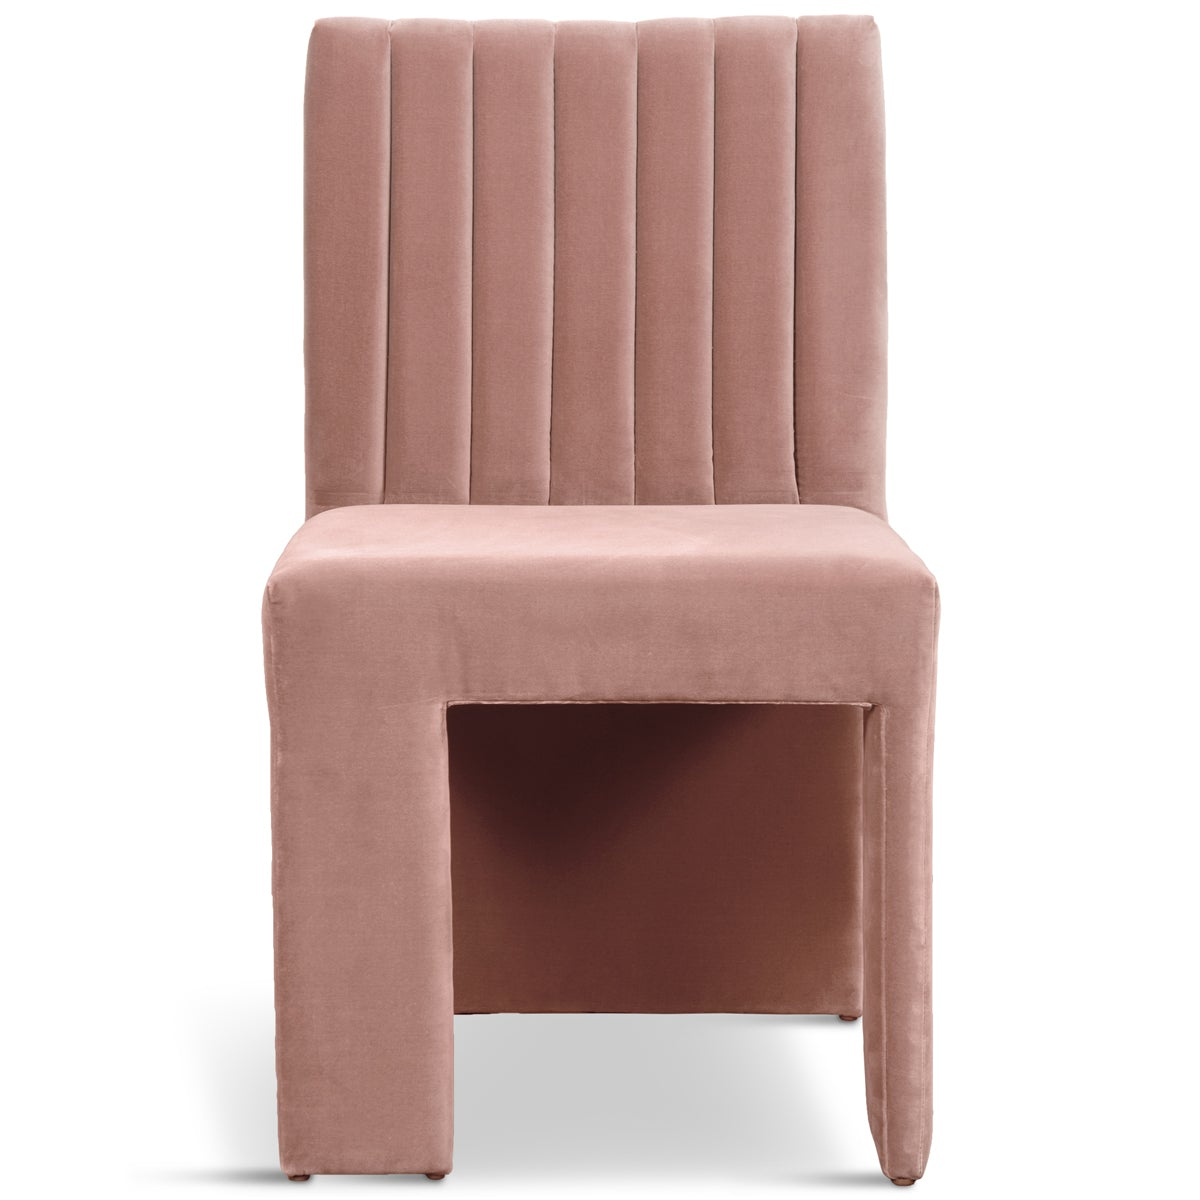 St. Martin Dining Chair in Velvet - ModShop1.com